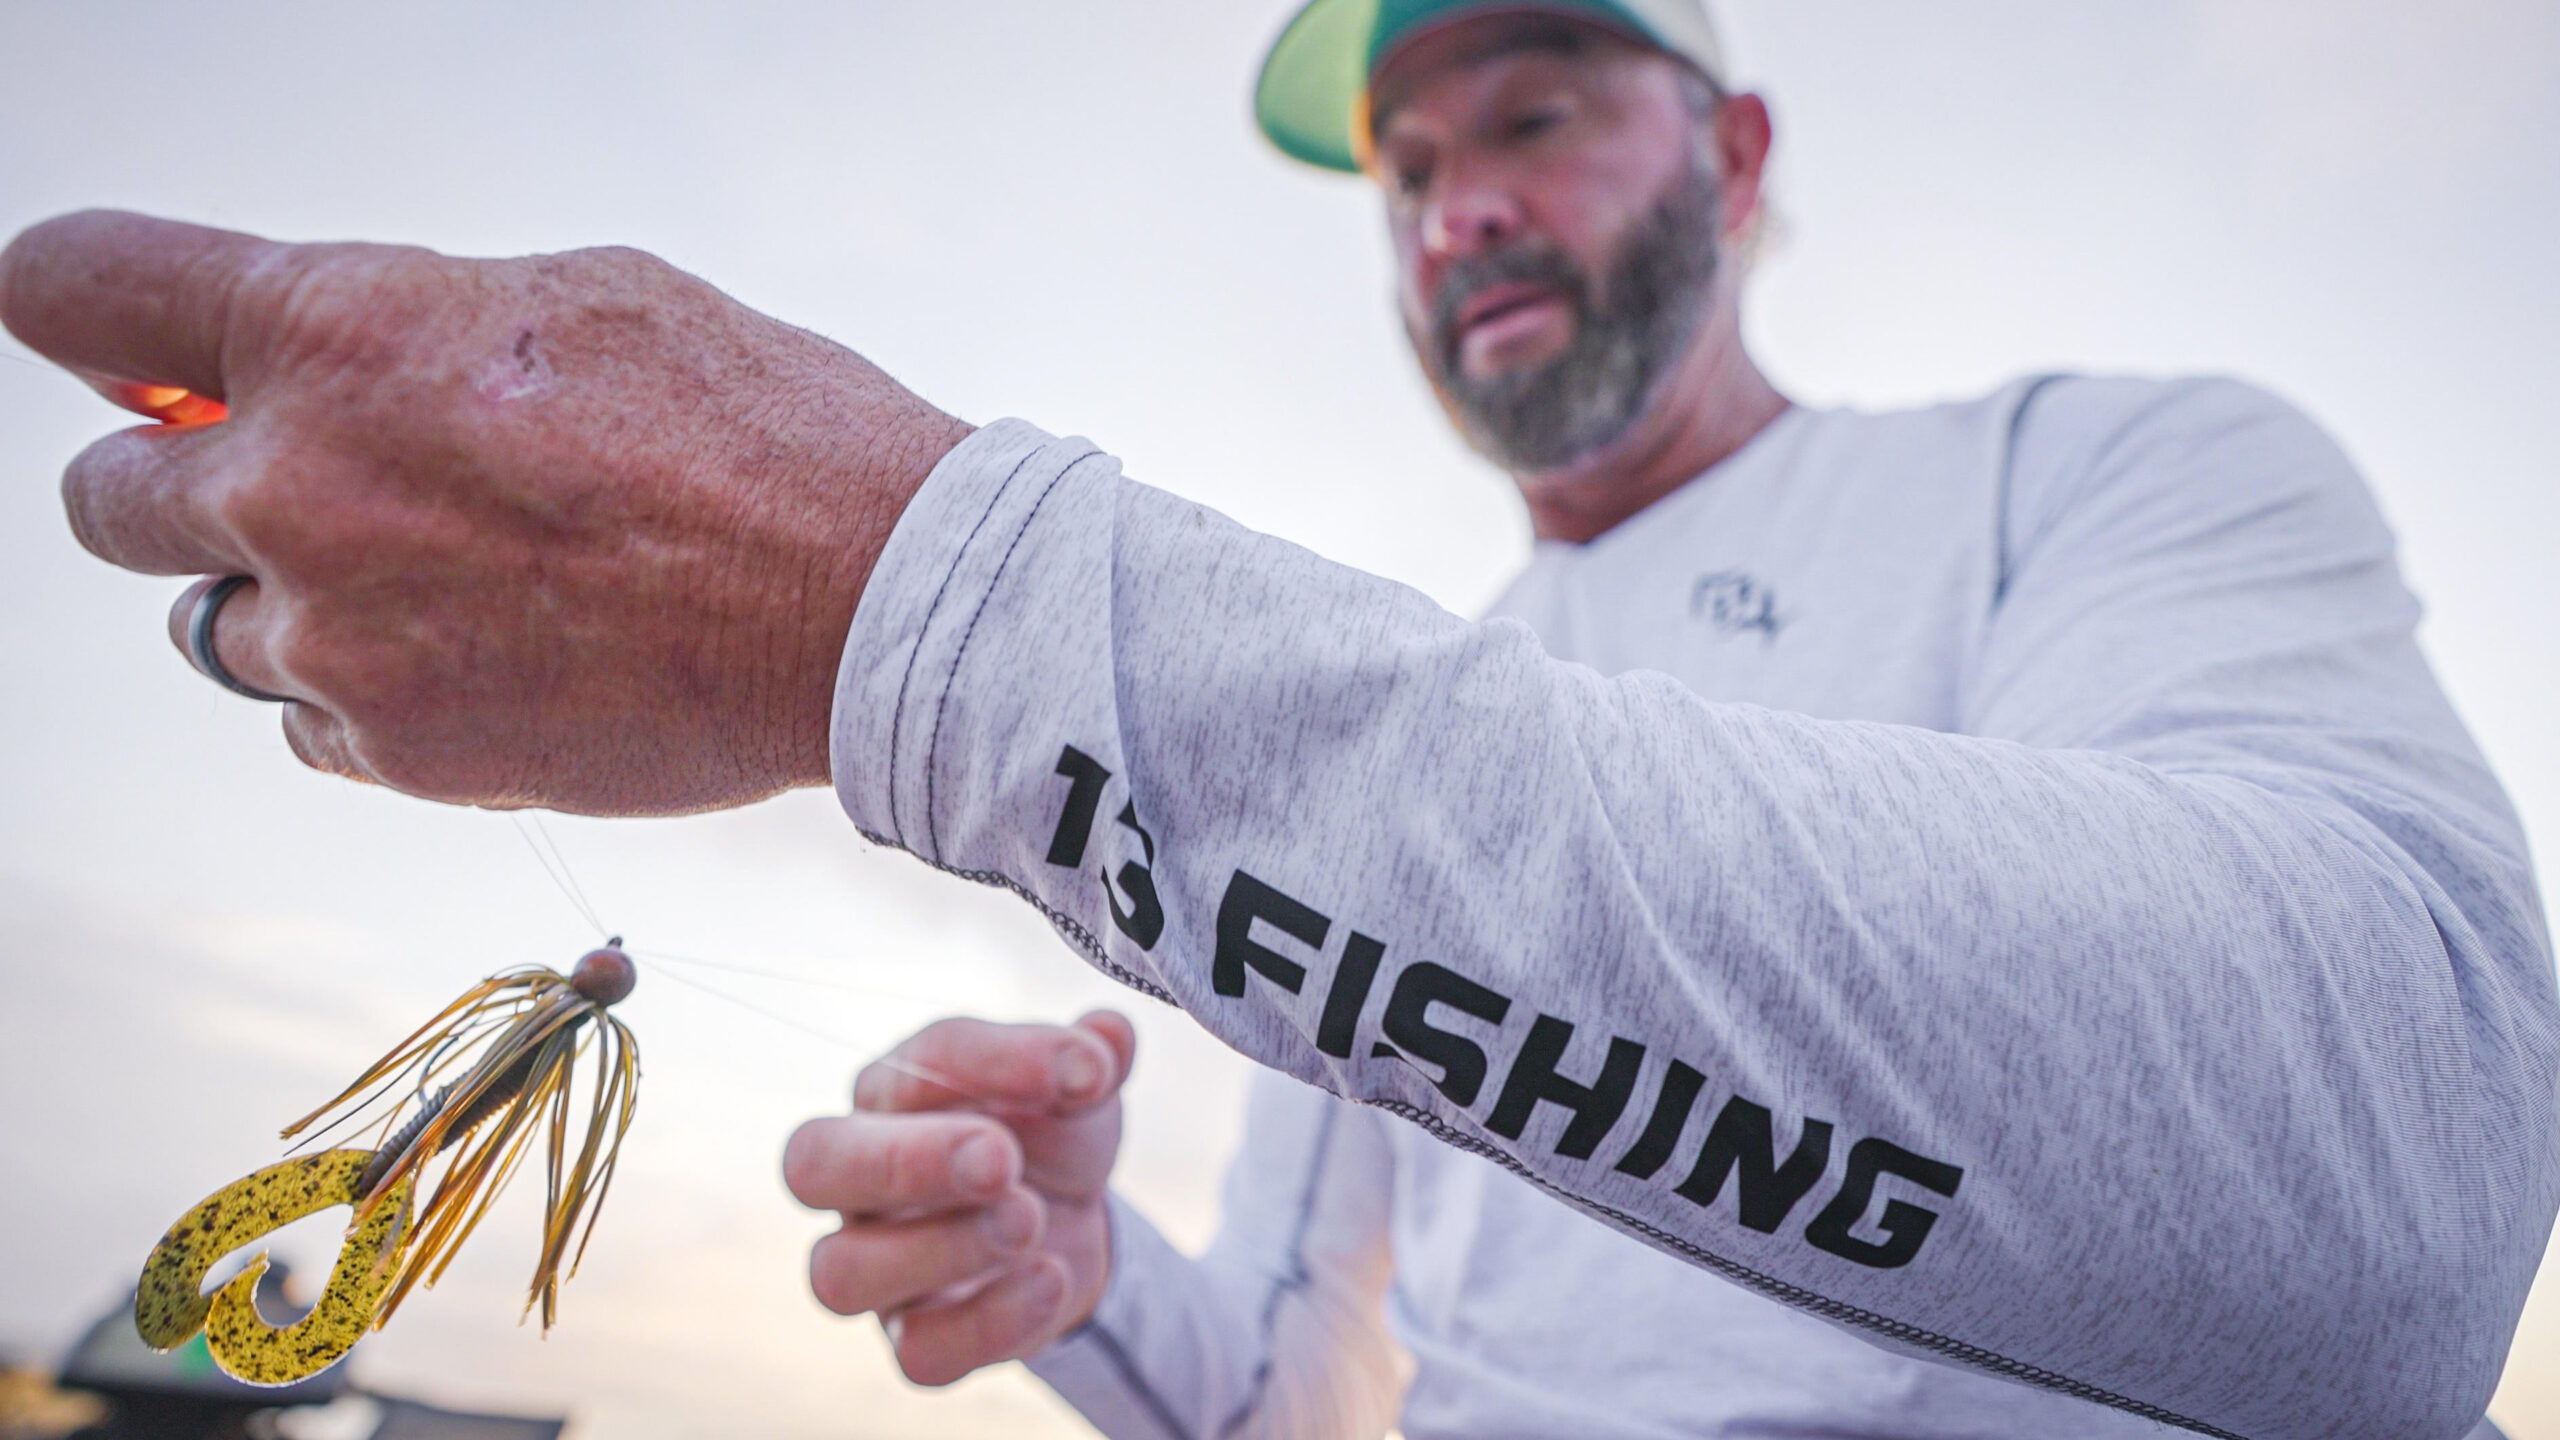 How to Snap Jigs for Tough Late Summer Bass | Swindle Tells All